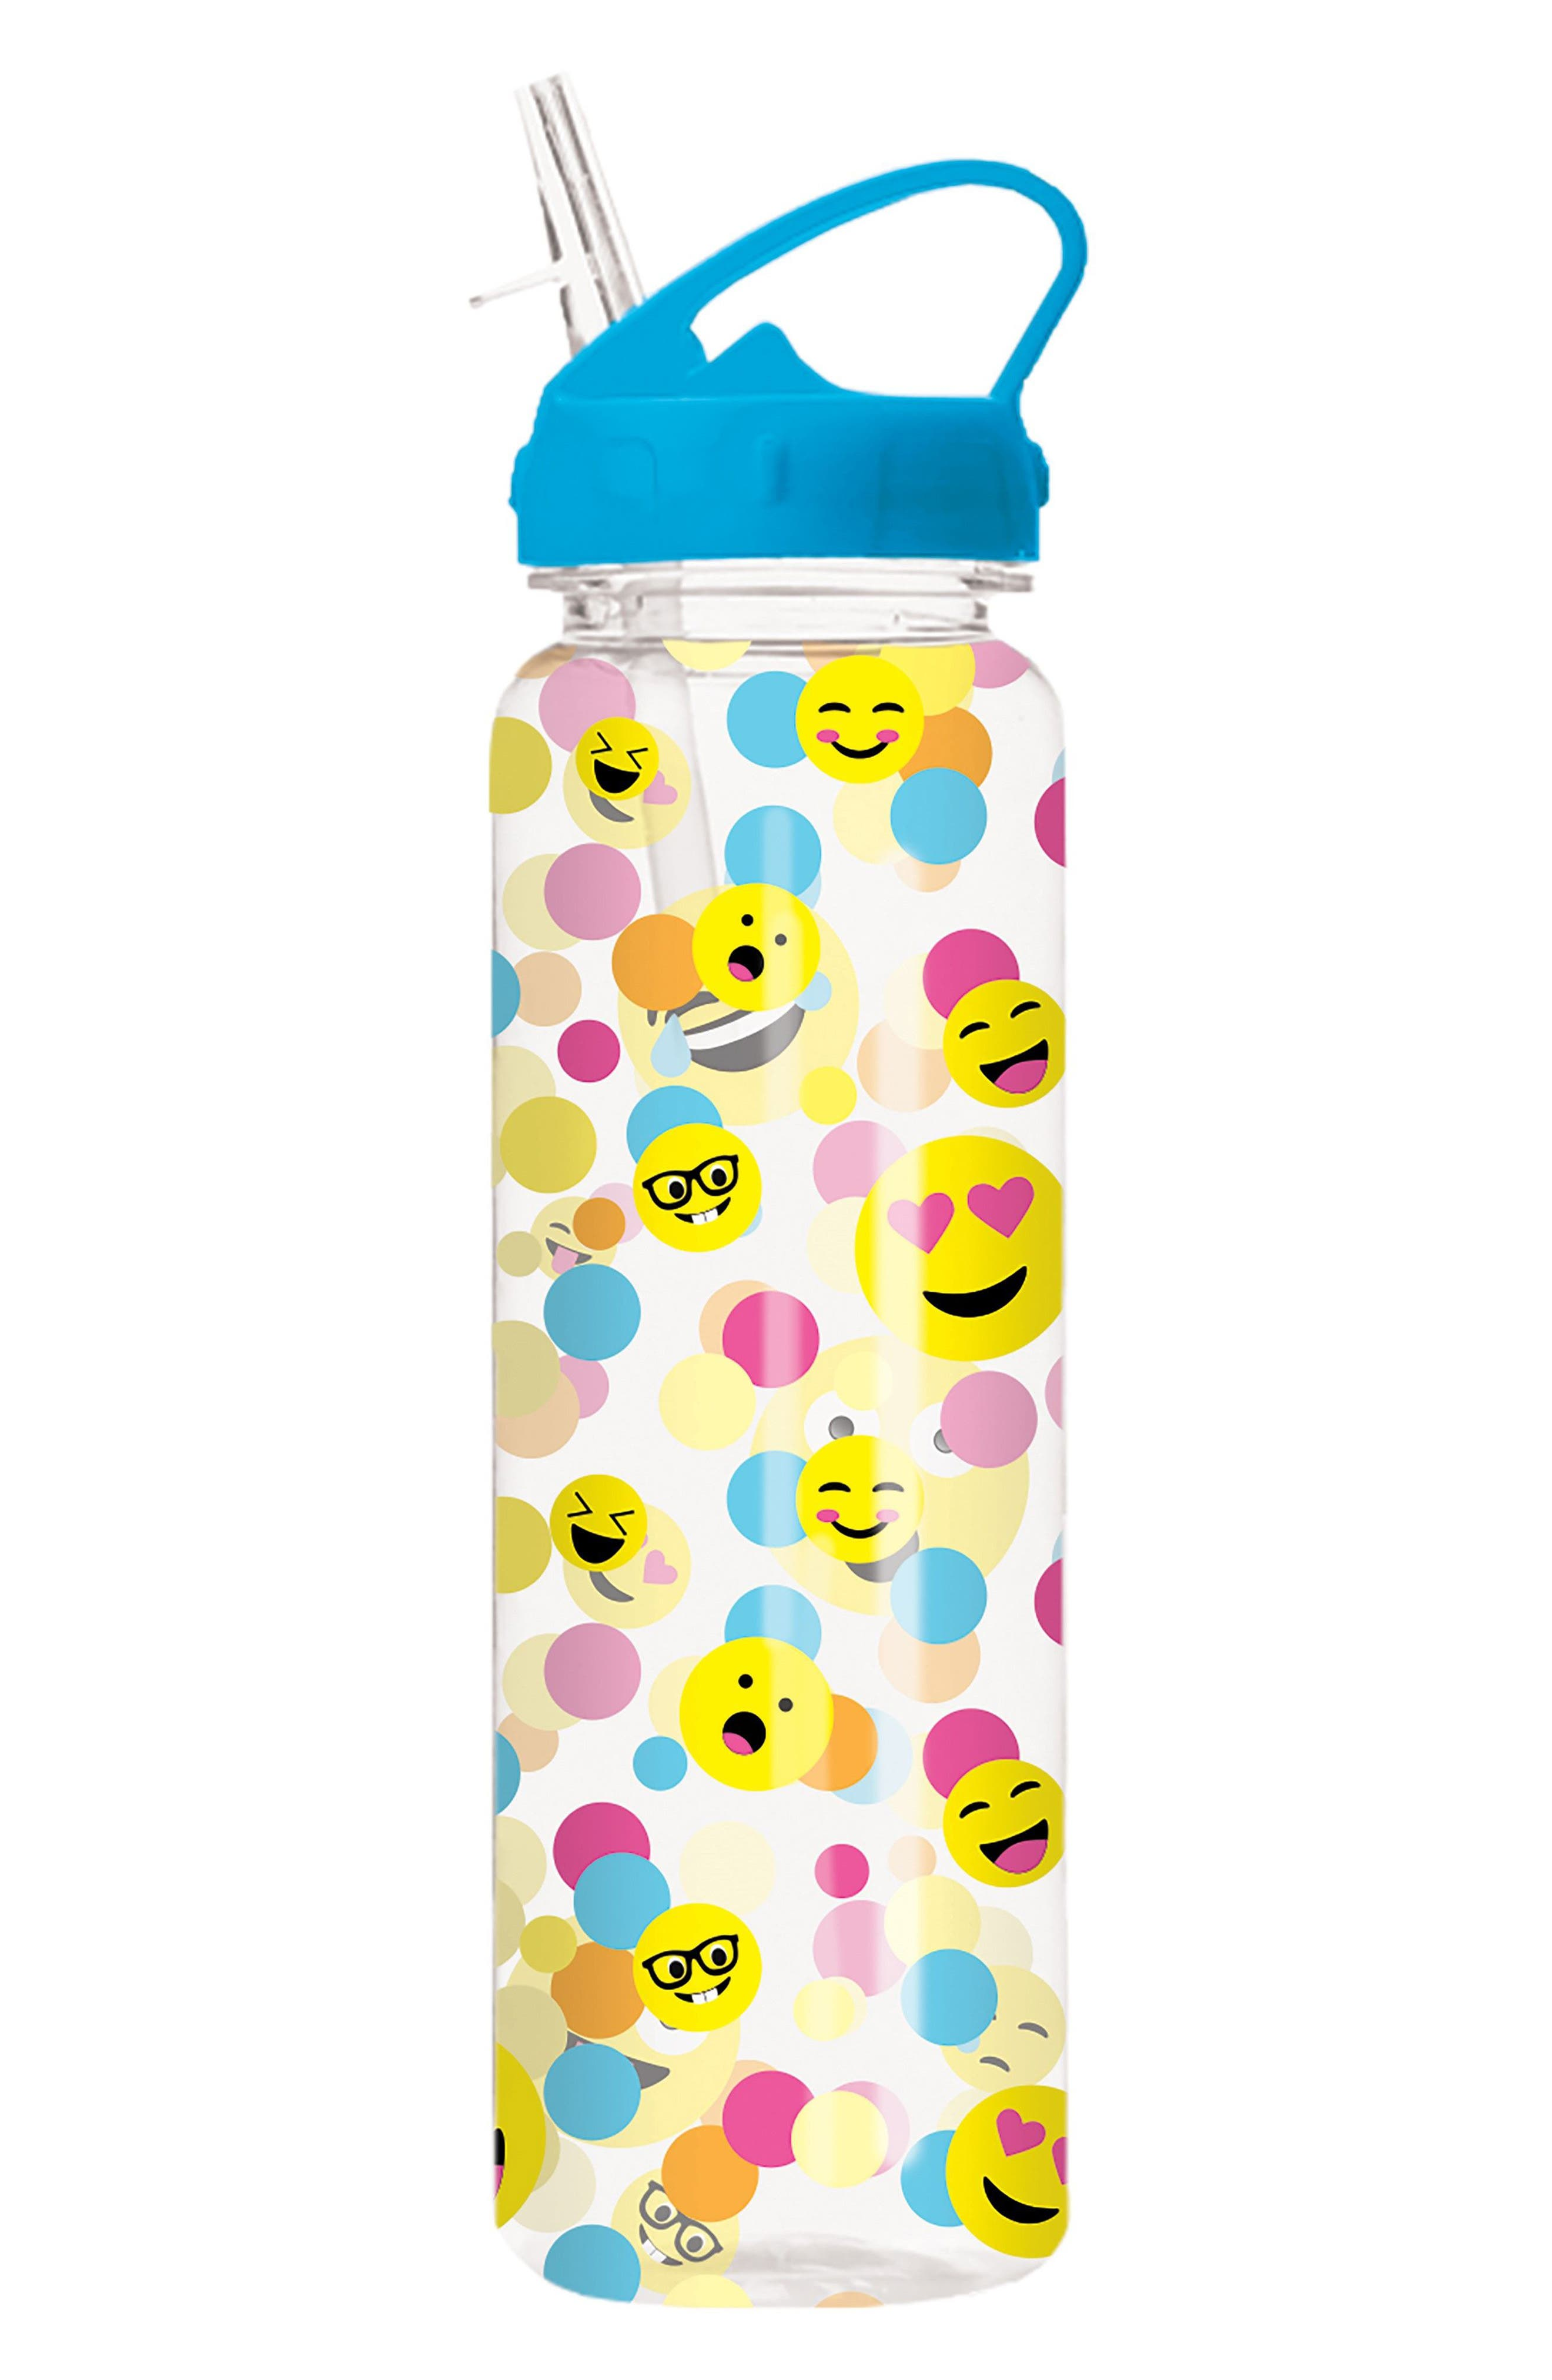 Iscream Confetti Emojii Water Bottle